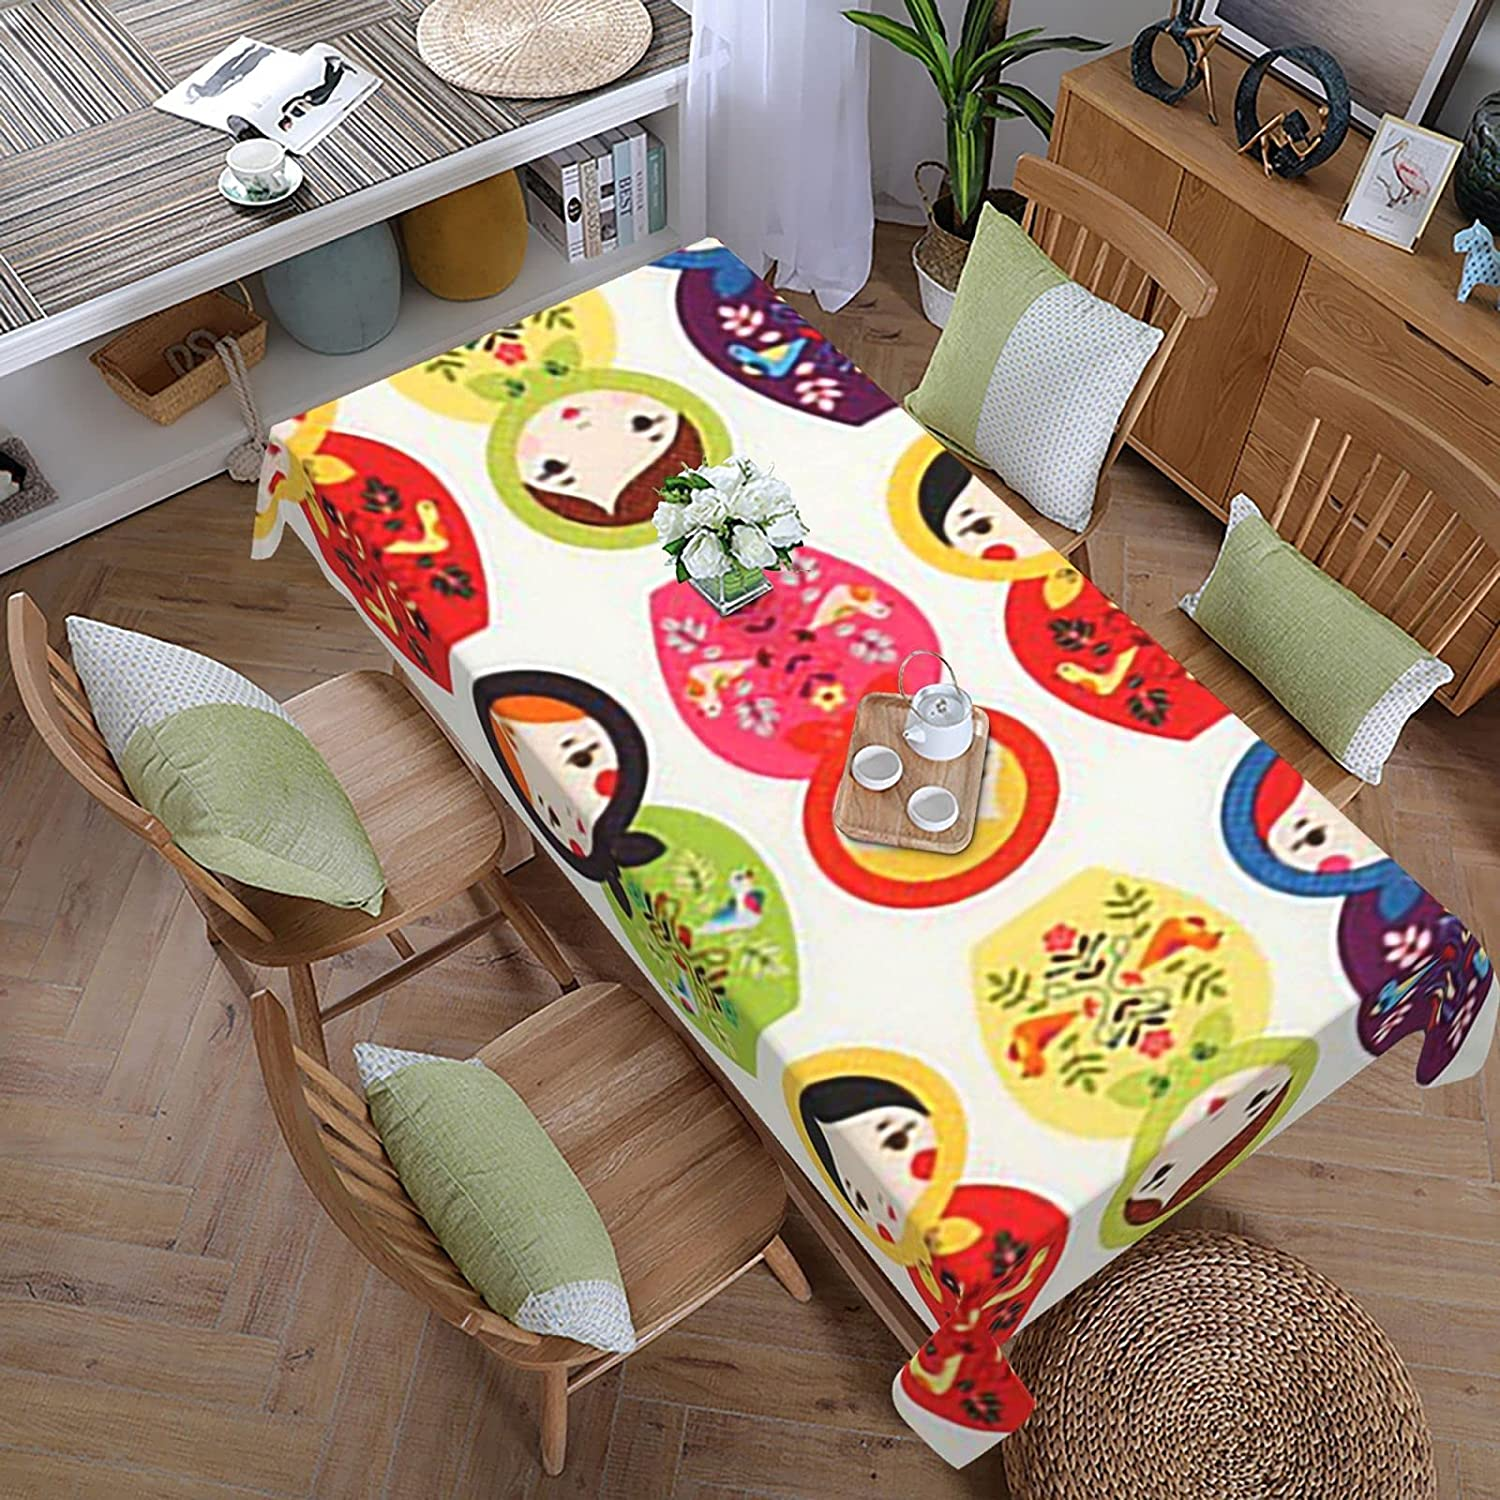 Russian Max 42% OFF Matryoshka Indoor Outdoor Tablecloth Spillproof Spri Gorgeous for